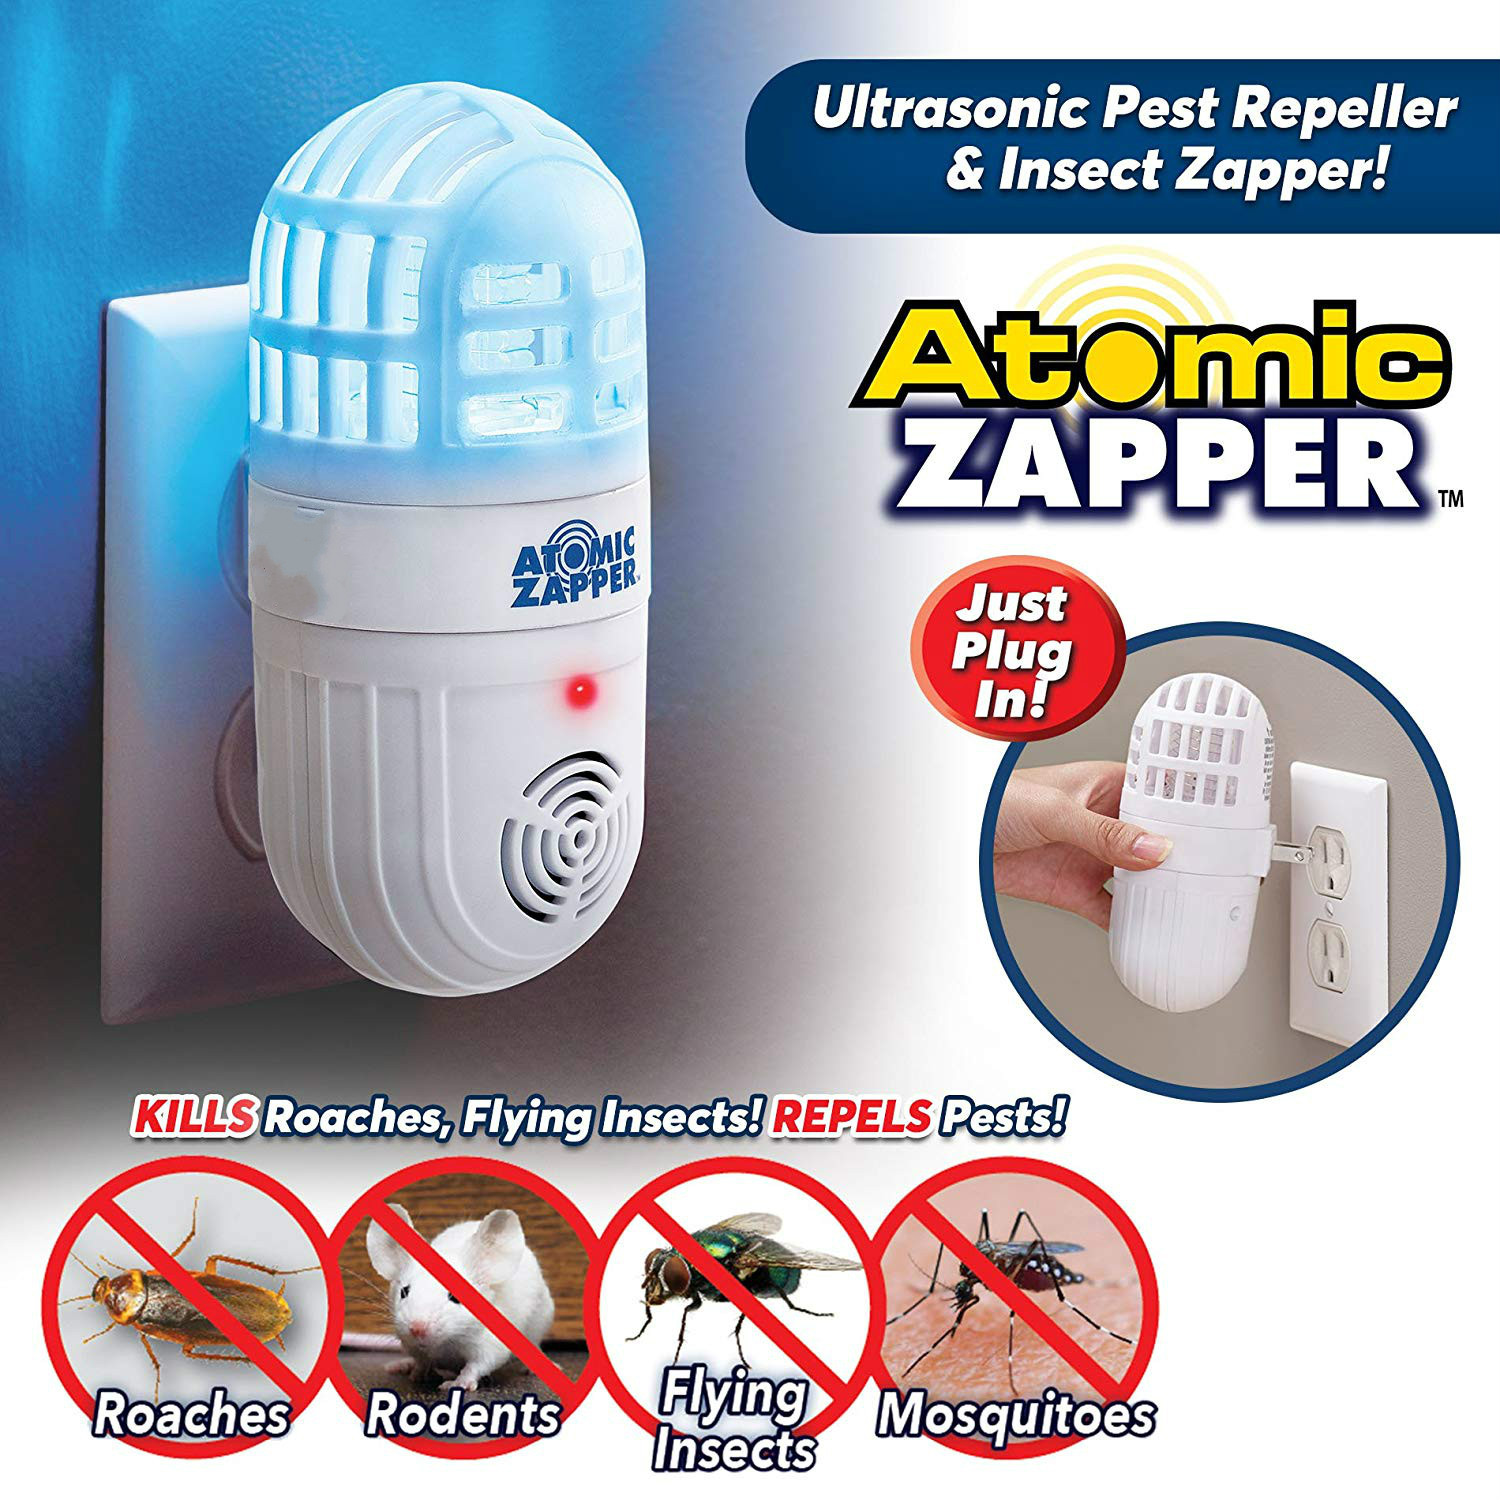 ATOMIC ZAPPER mosquito repellent new ultrasonic mosquito repellent insect repellent rat cockroach antATOMIC ZAPPER mosquito repellent new ultrasonic mosquito repellent insect repellent rat cockroach ant